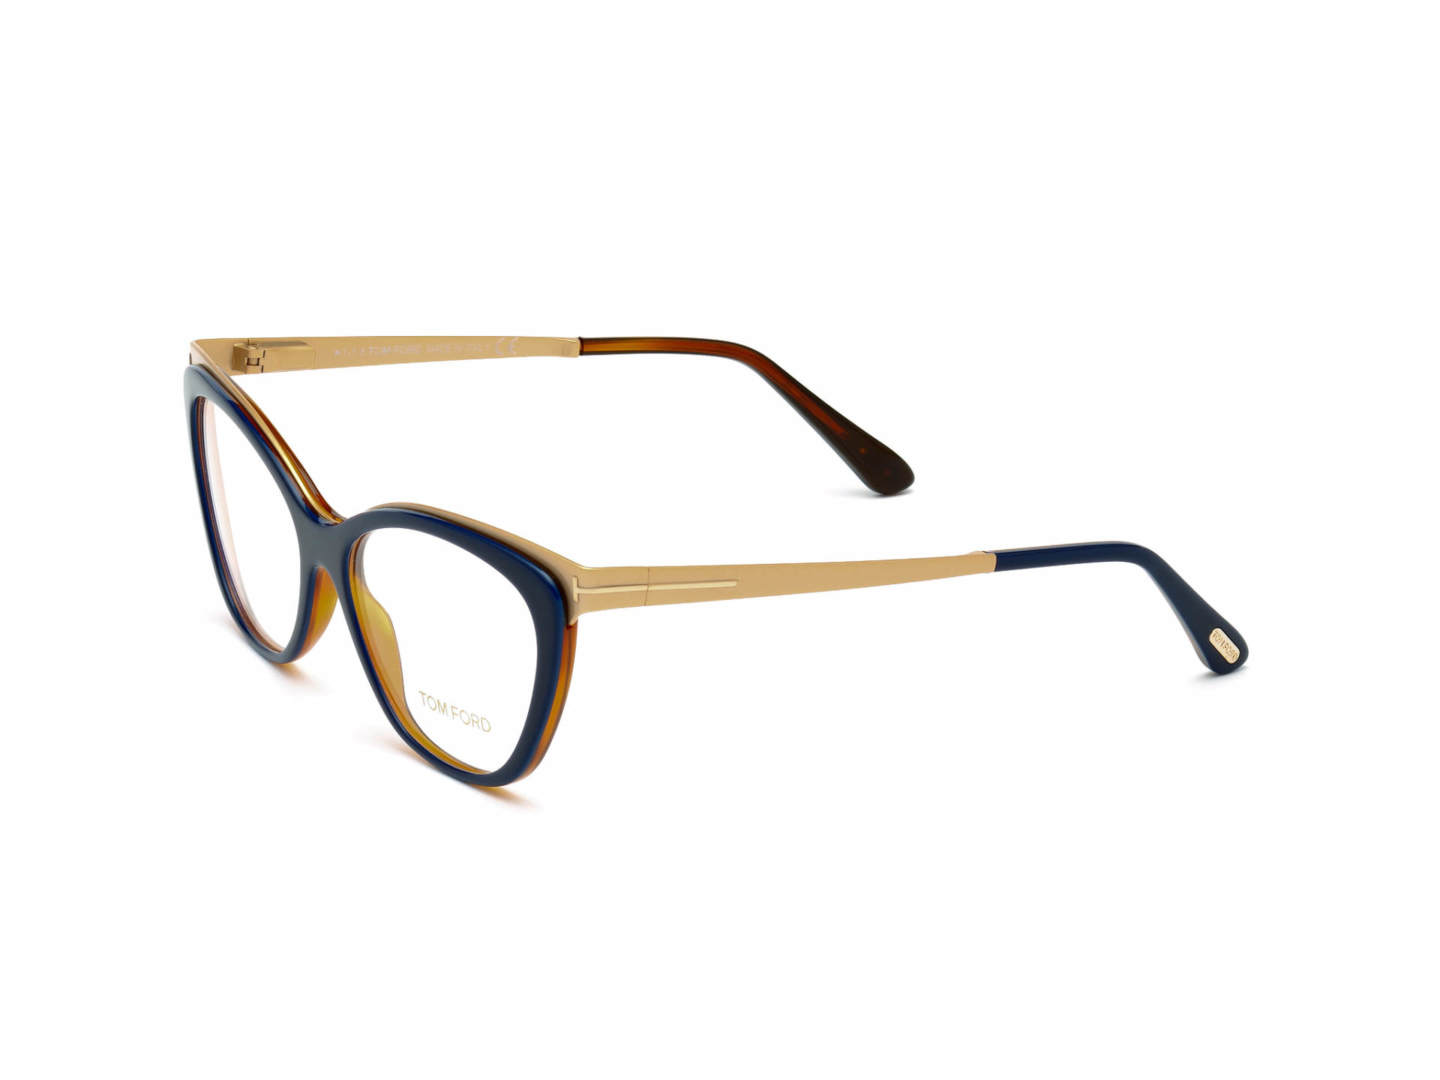 Occhiali da Vista Tom Ford FT5374 090 OvsxP